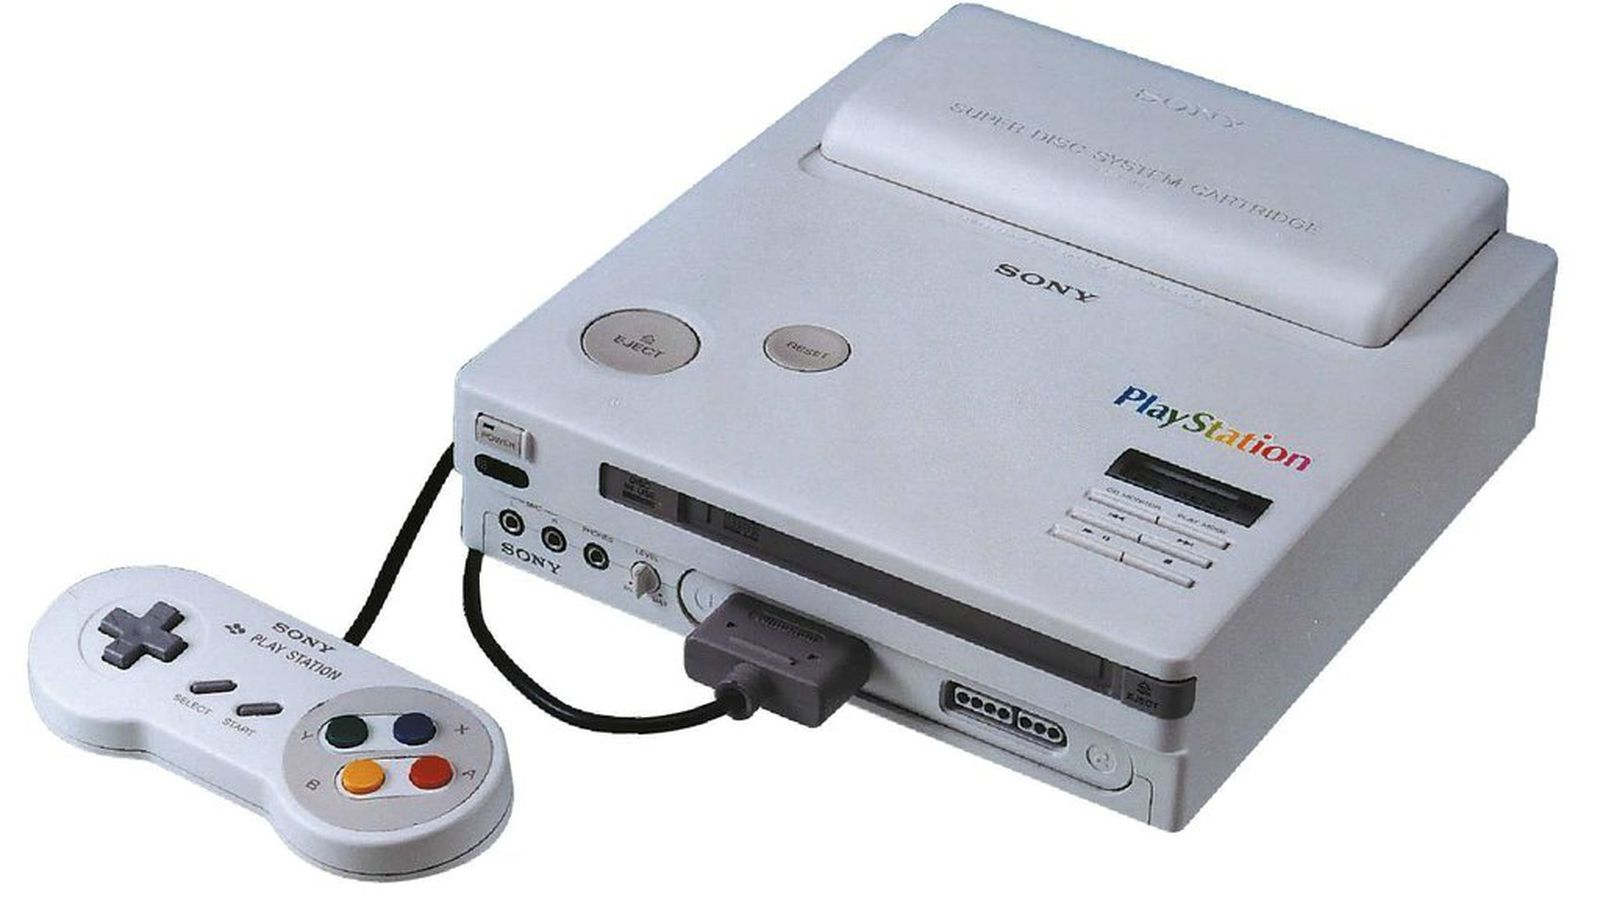 The Nintendo PlayStation prototype can finally play CD-ROM games